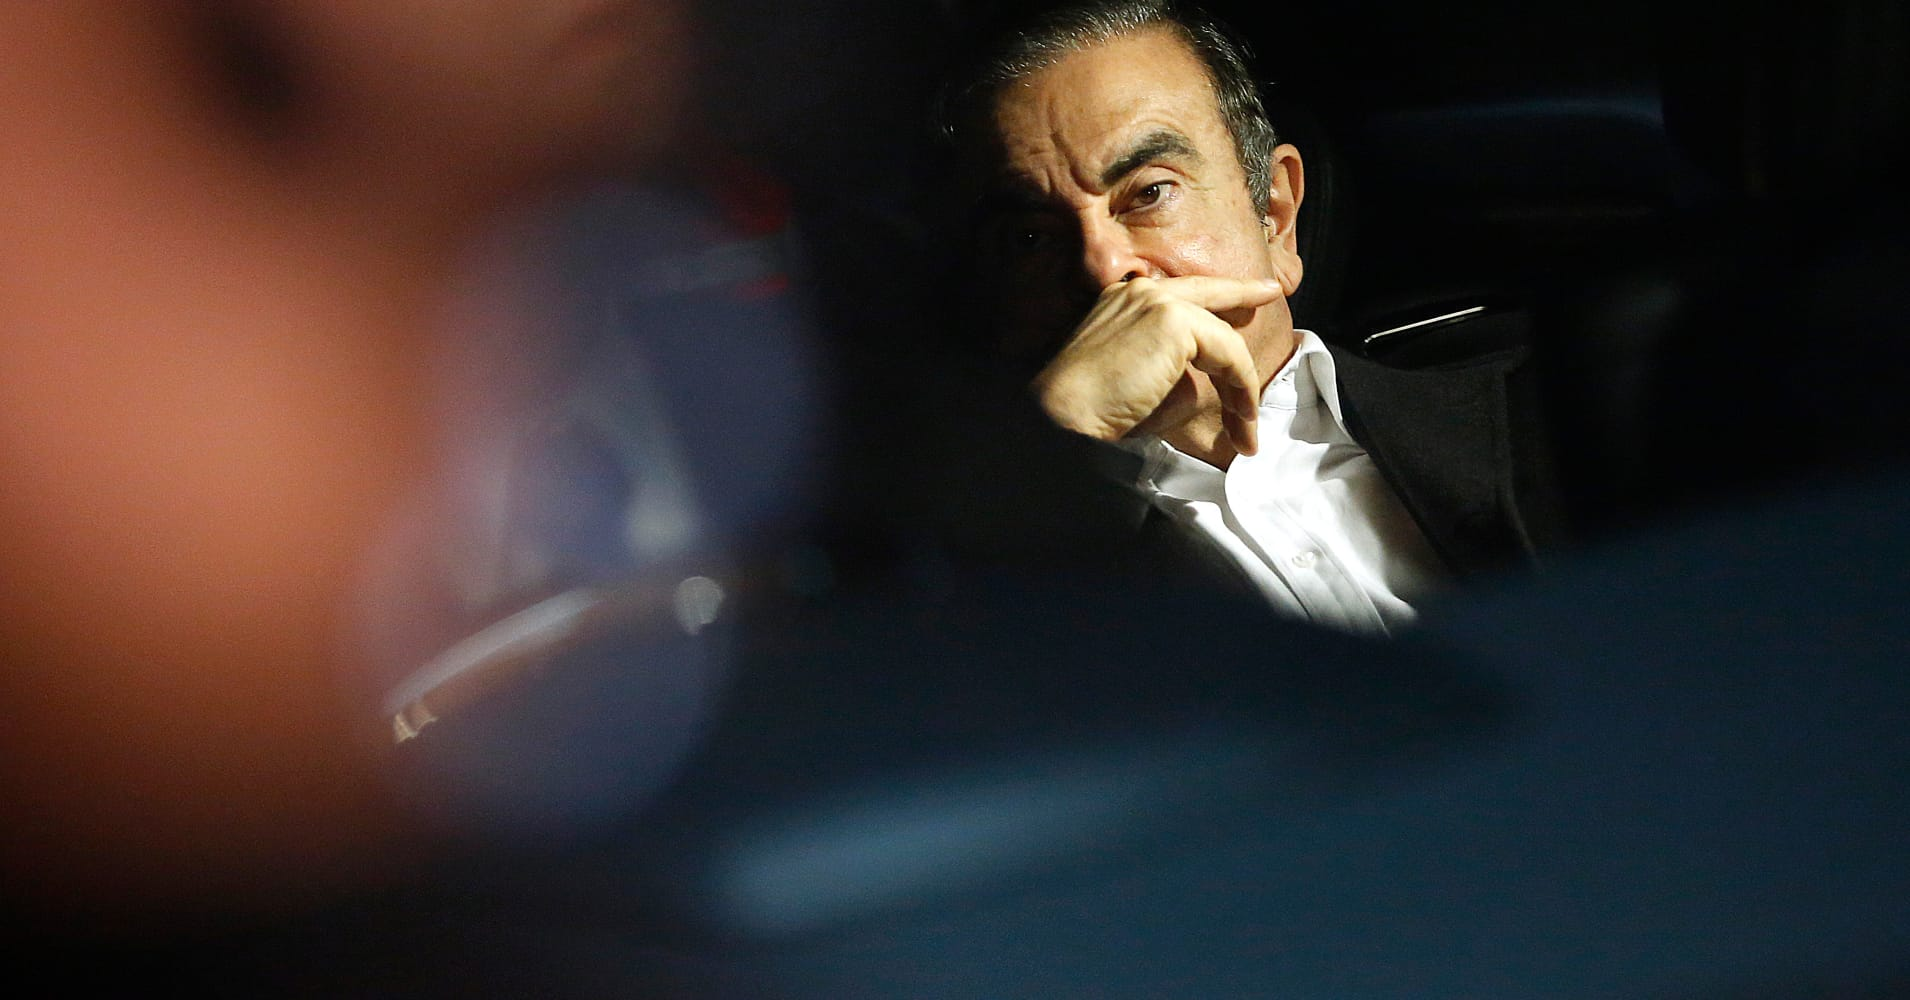 Nissan executives allegedly orchestrated Carlos Ghosn's arrest to kill merger with Renault